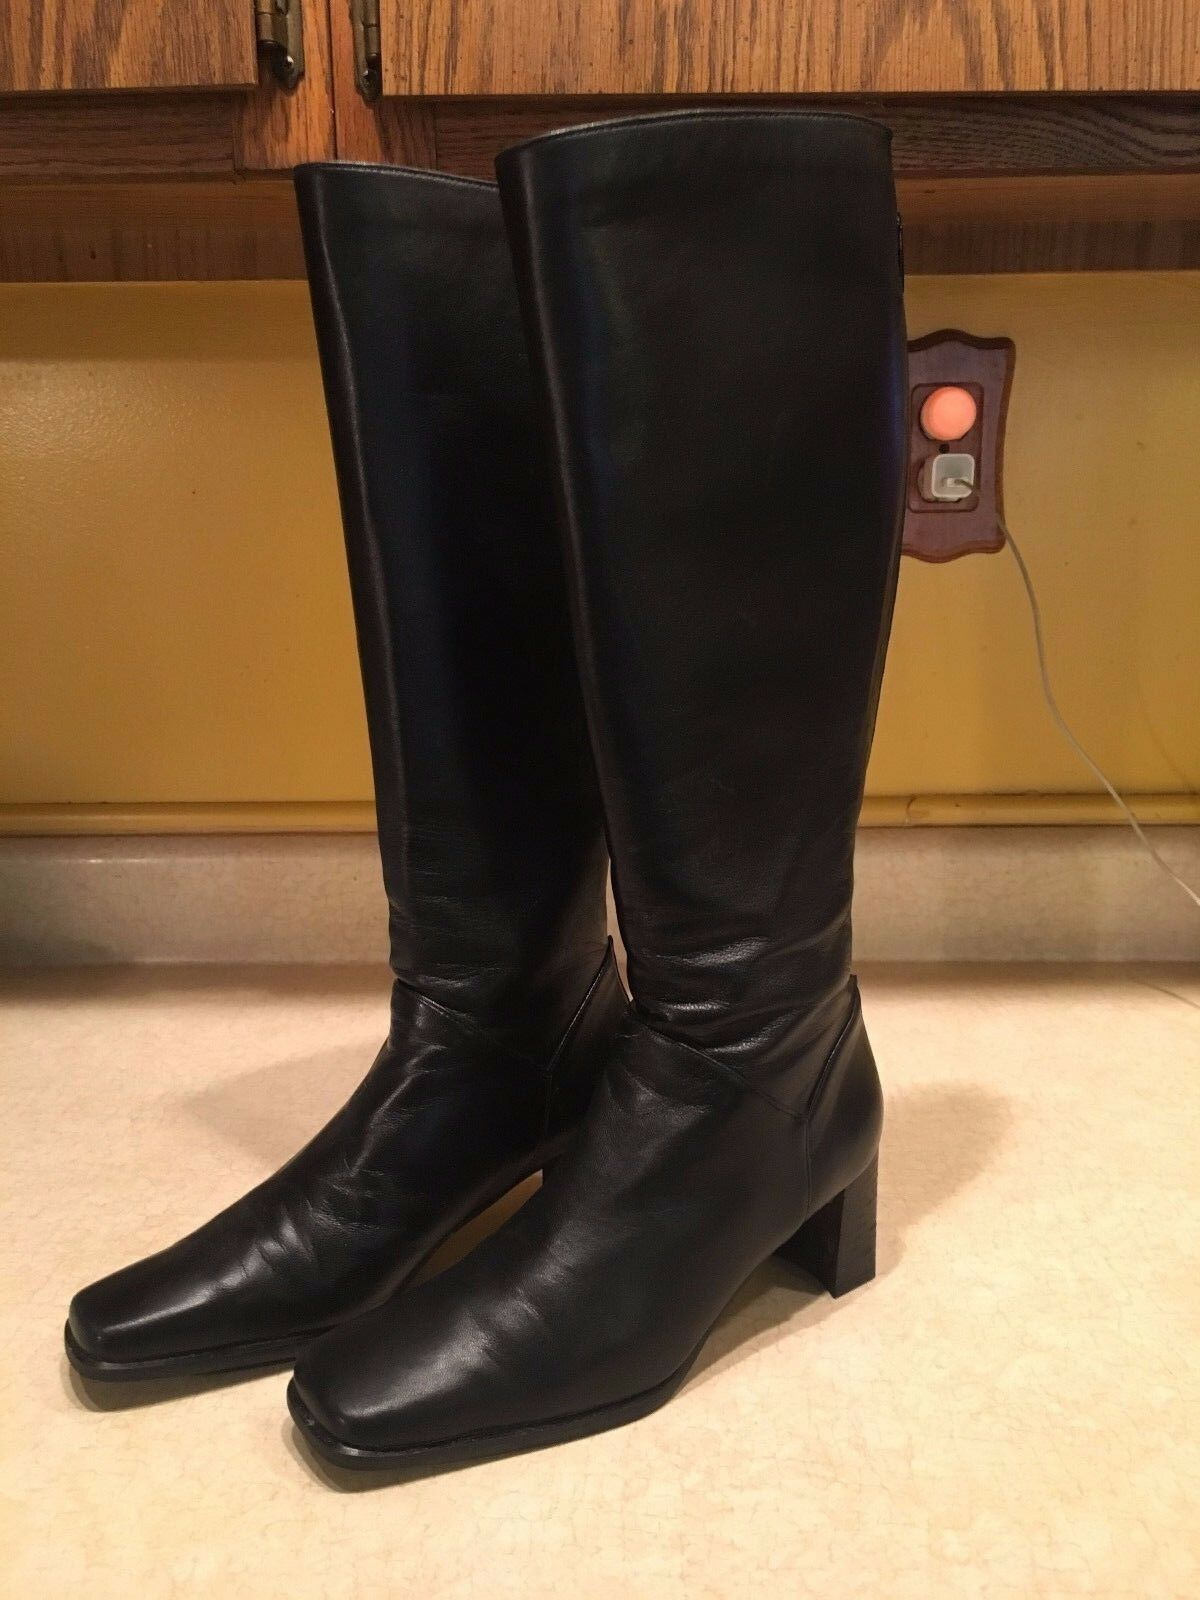 Stuart Weitzman Black Leather Knee High Boots Size 5 B Style   5284